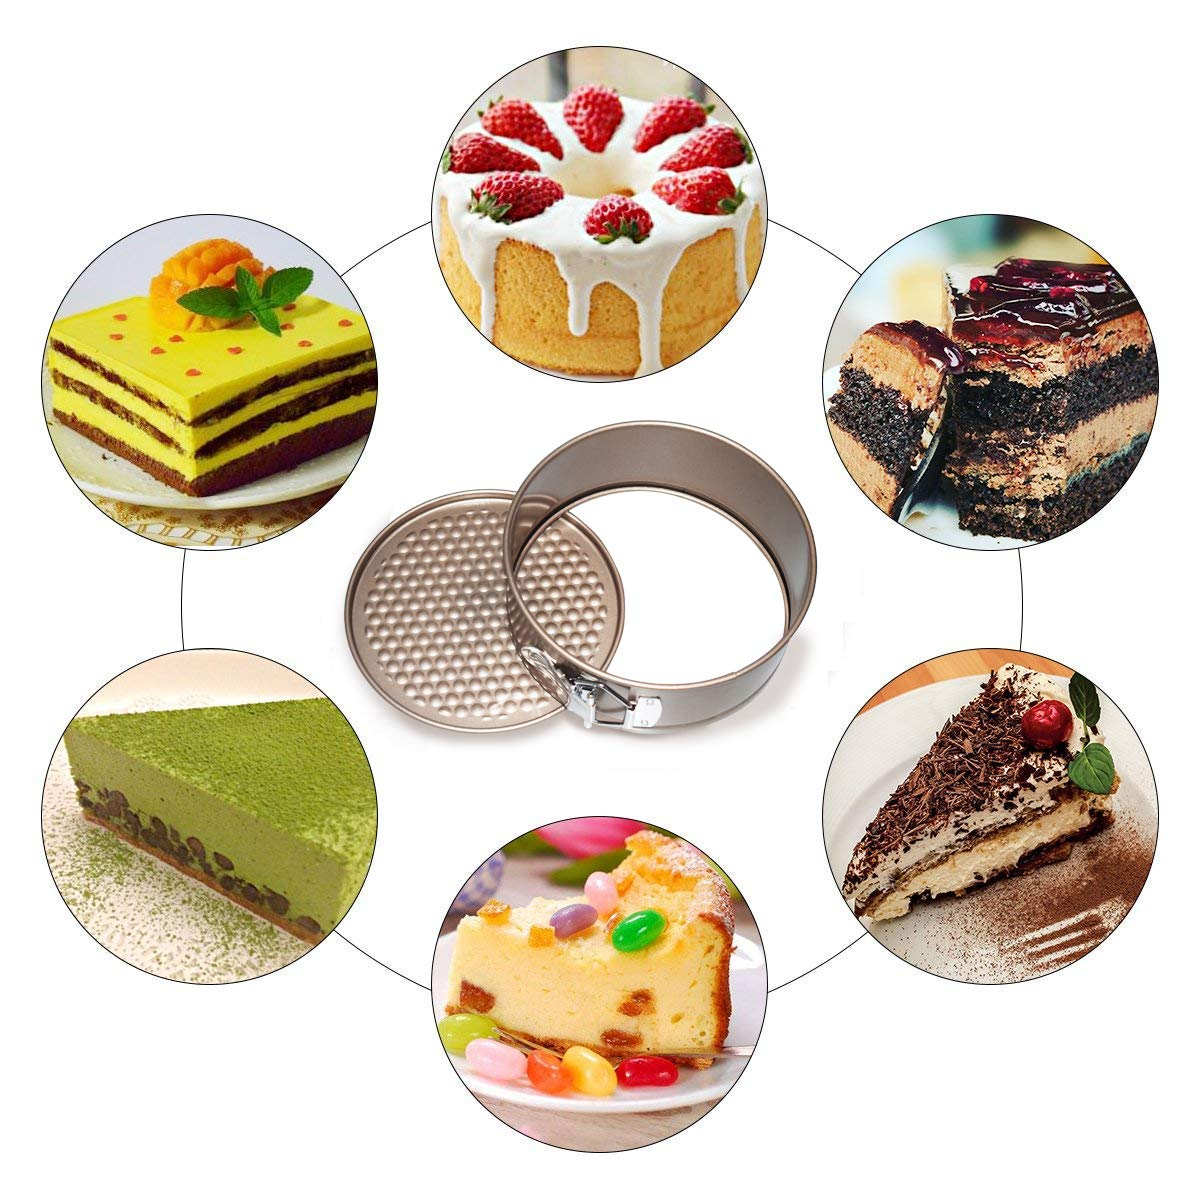 7 Inch BESYZY Circular Springform Interlocking Pan Non Stick Quick-Release Latch Leak-Proof Spring Form Round Cake Bakeware Tins Carbon Cake Pan Cheesecake pan with Removable Bottom 18 cm